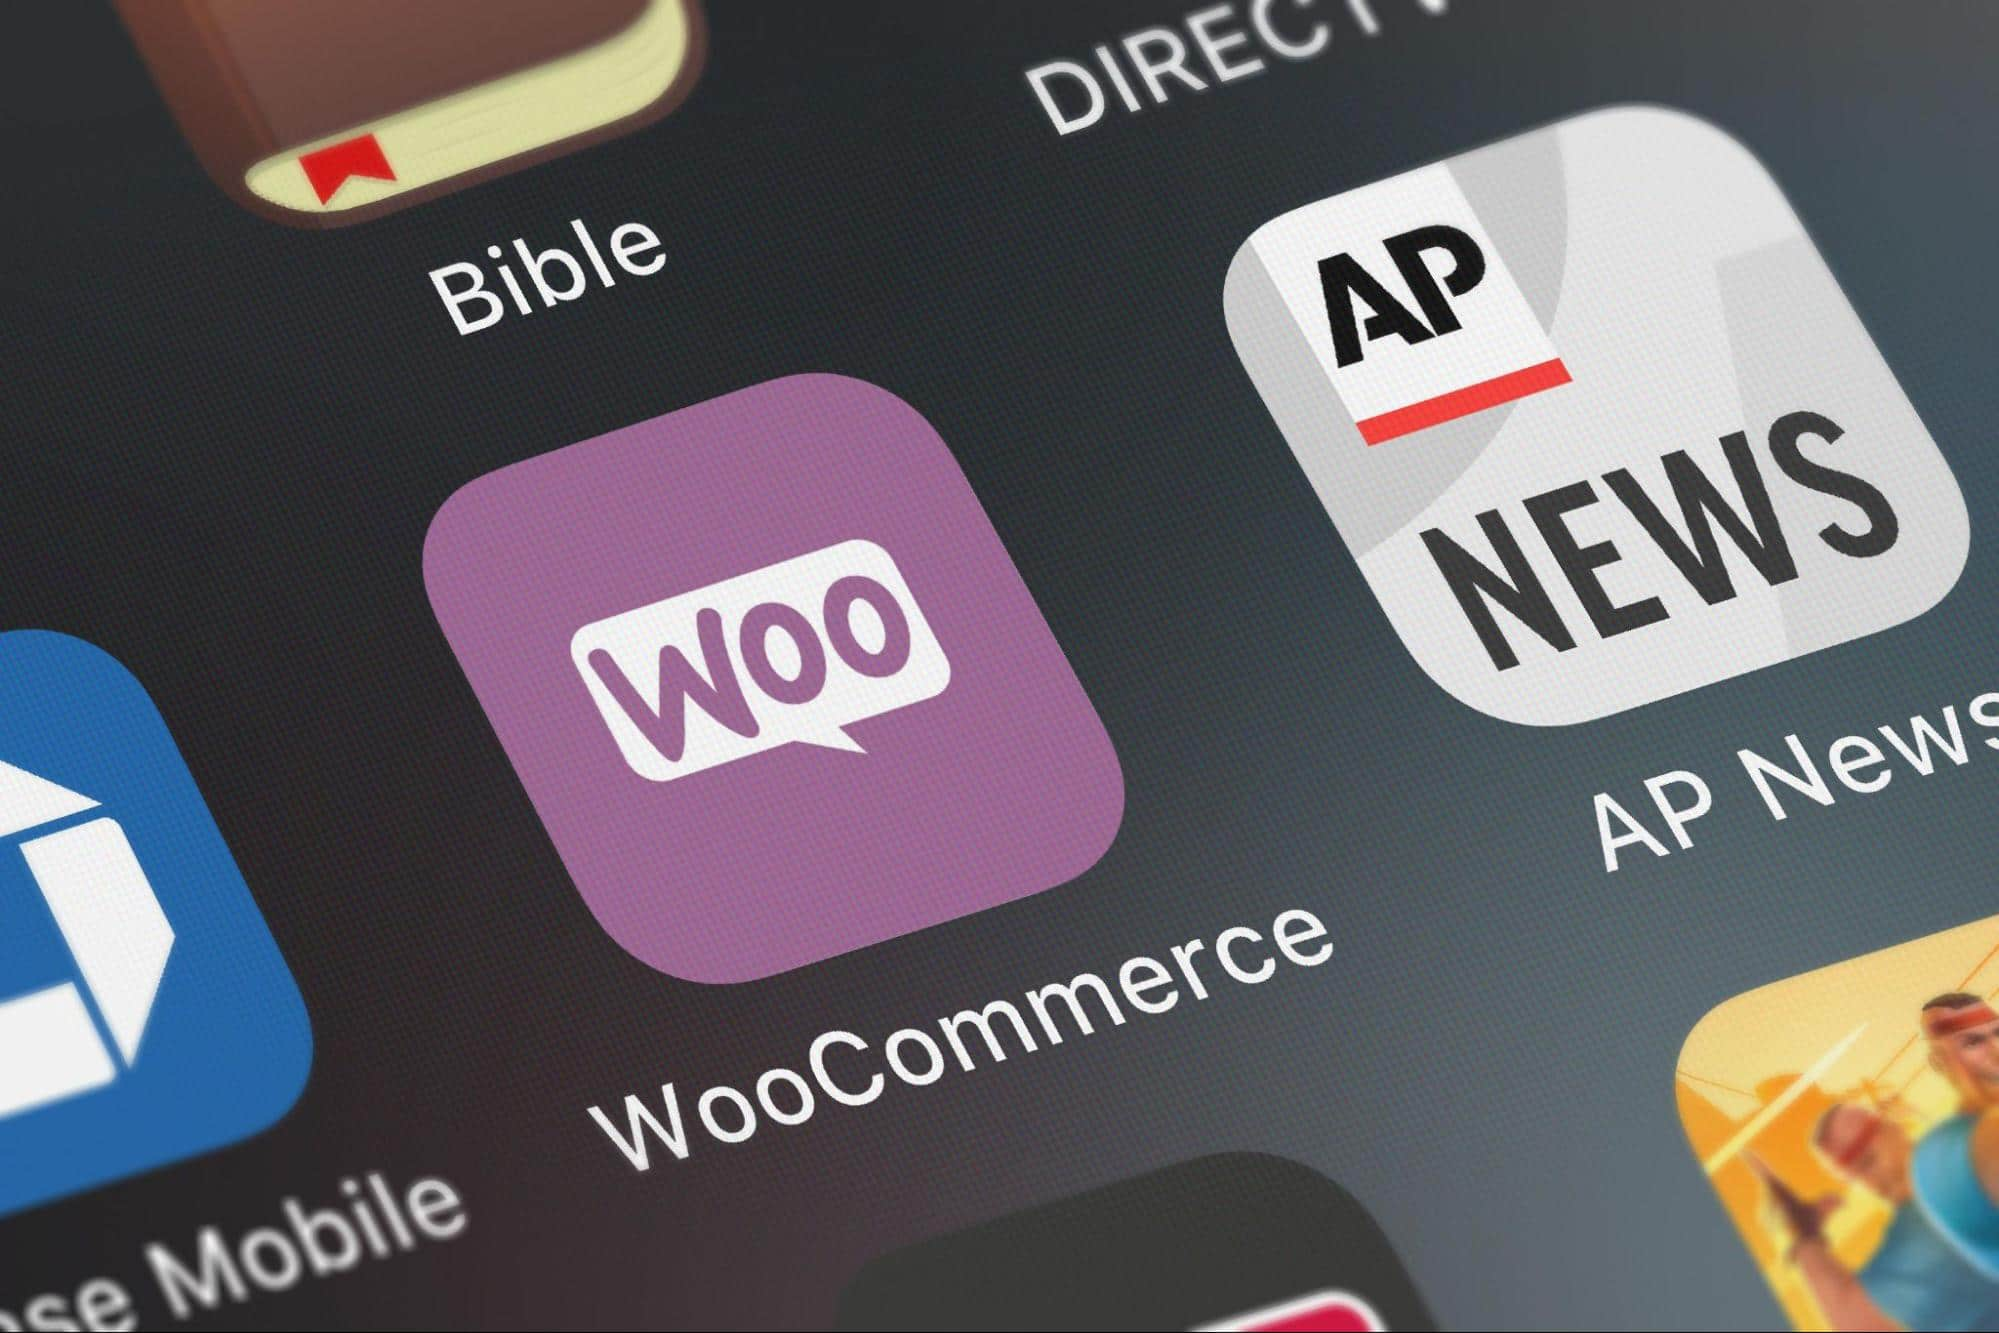 5 Good Reasons Why WooCommerce is the Right Choice for Your Business